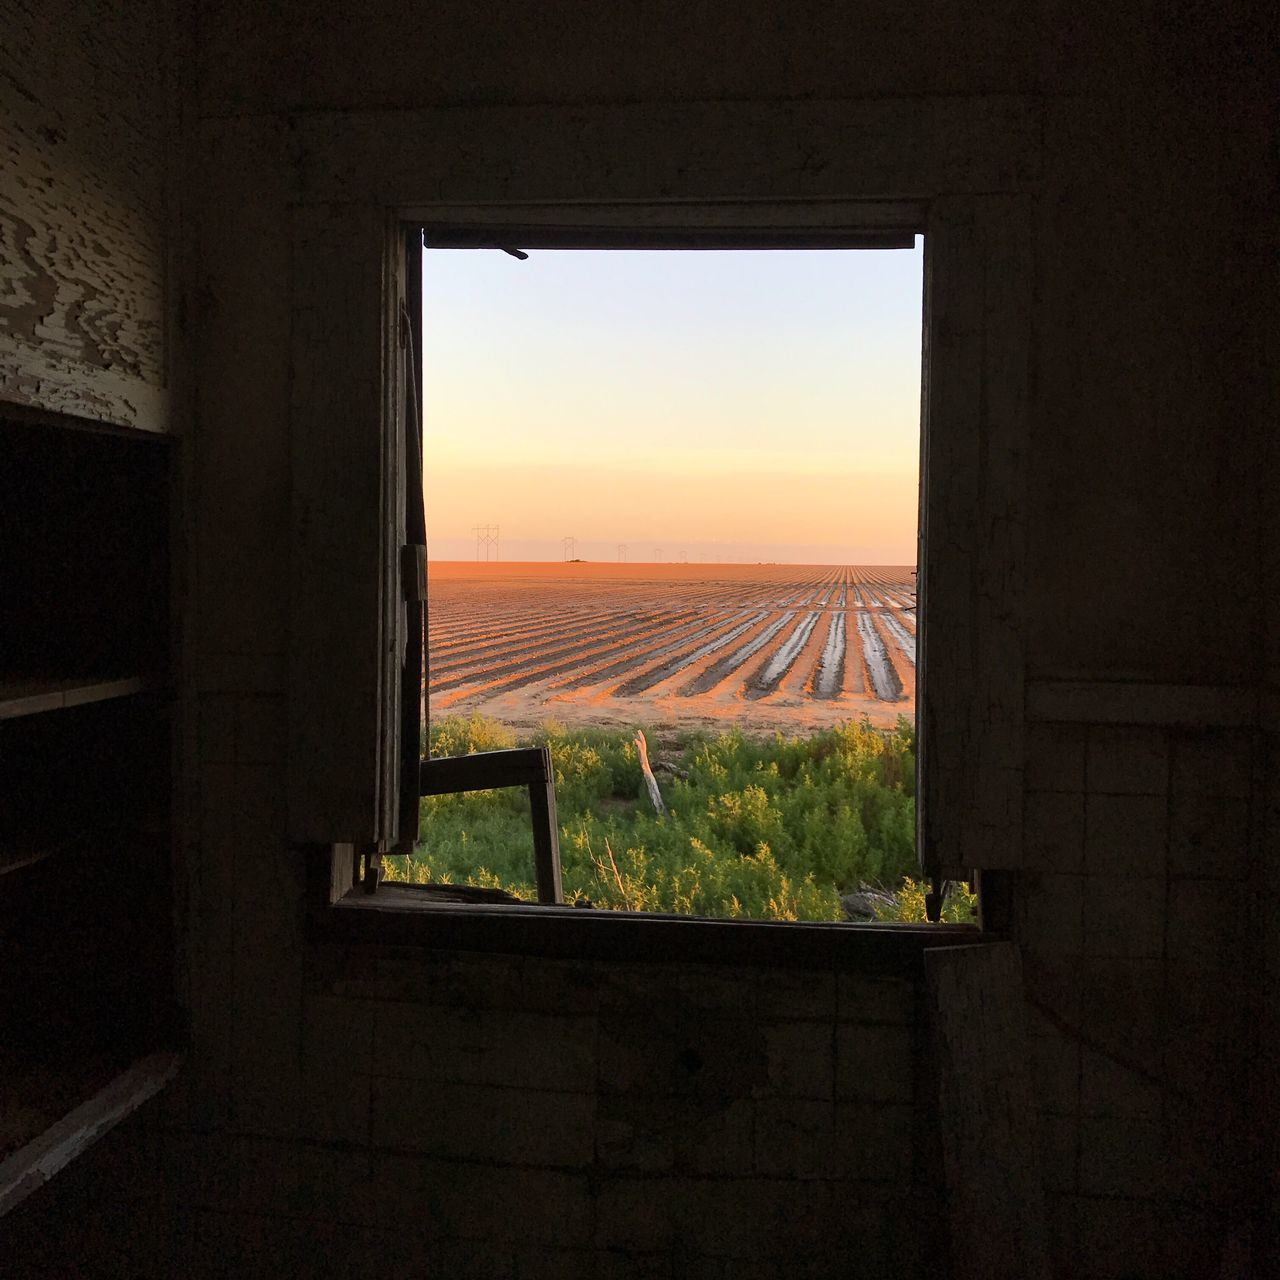 """""""Once A View"""" An abandoned house on the cotton fields of Texas, a history insight I had, knowing how life once went there, it makes me very sad. A lost love attached, dreams broken then and now...I cry...I'm left with only two words, and that is how and why. Window Sunset Sky Indoors  Landscape Agriculture Scenics Abandoned Buildings Abandoned Places Lost Love Poetry Poetry In Pictures Brokendreams West Texas Cottonfields Westtexasskies Silhouette Metaphor"""